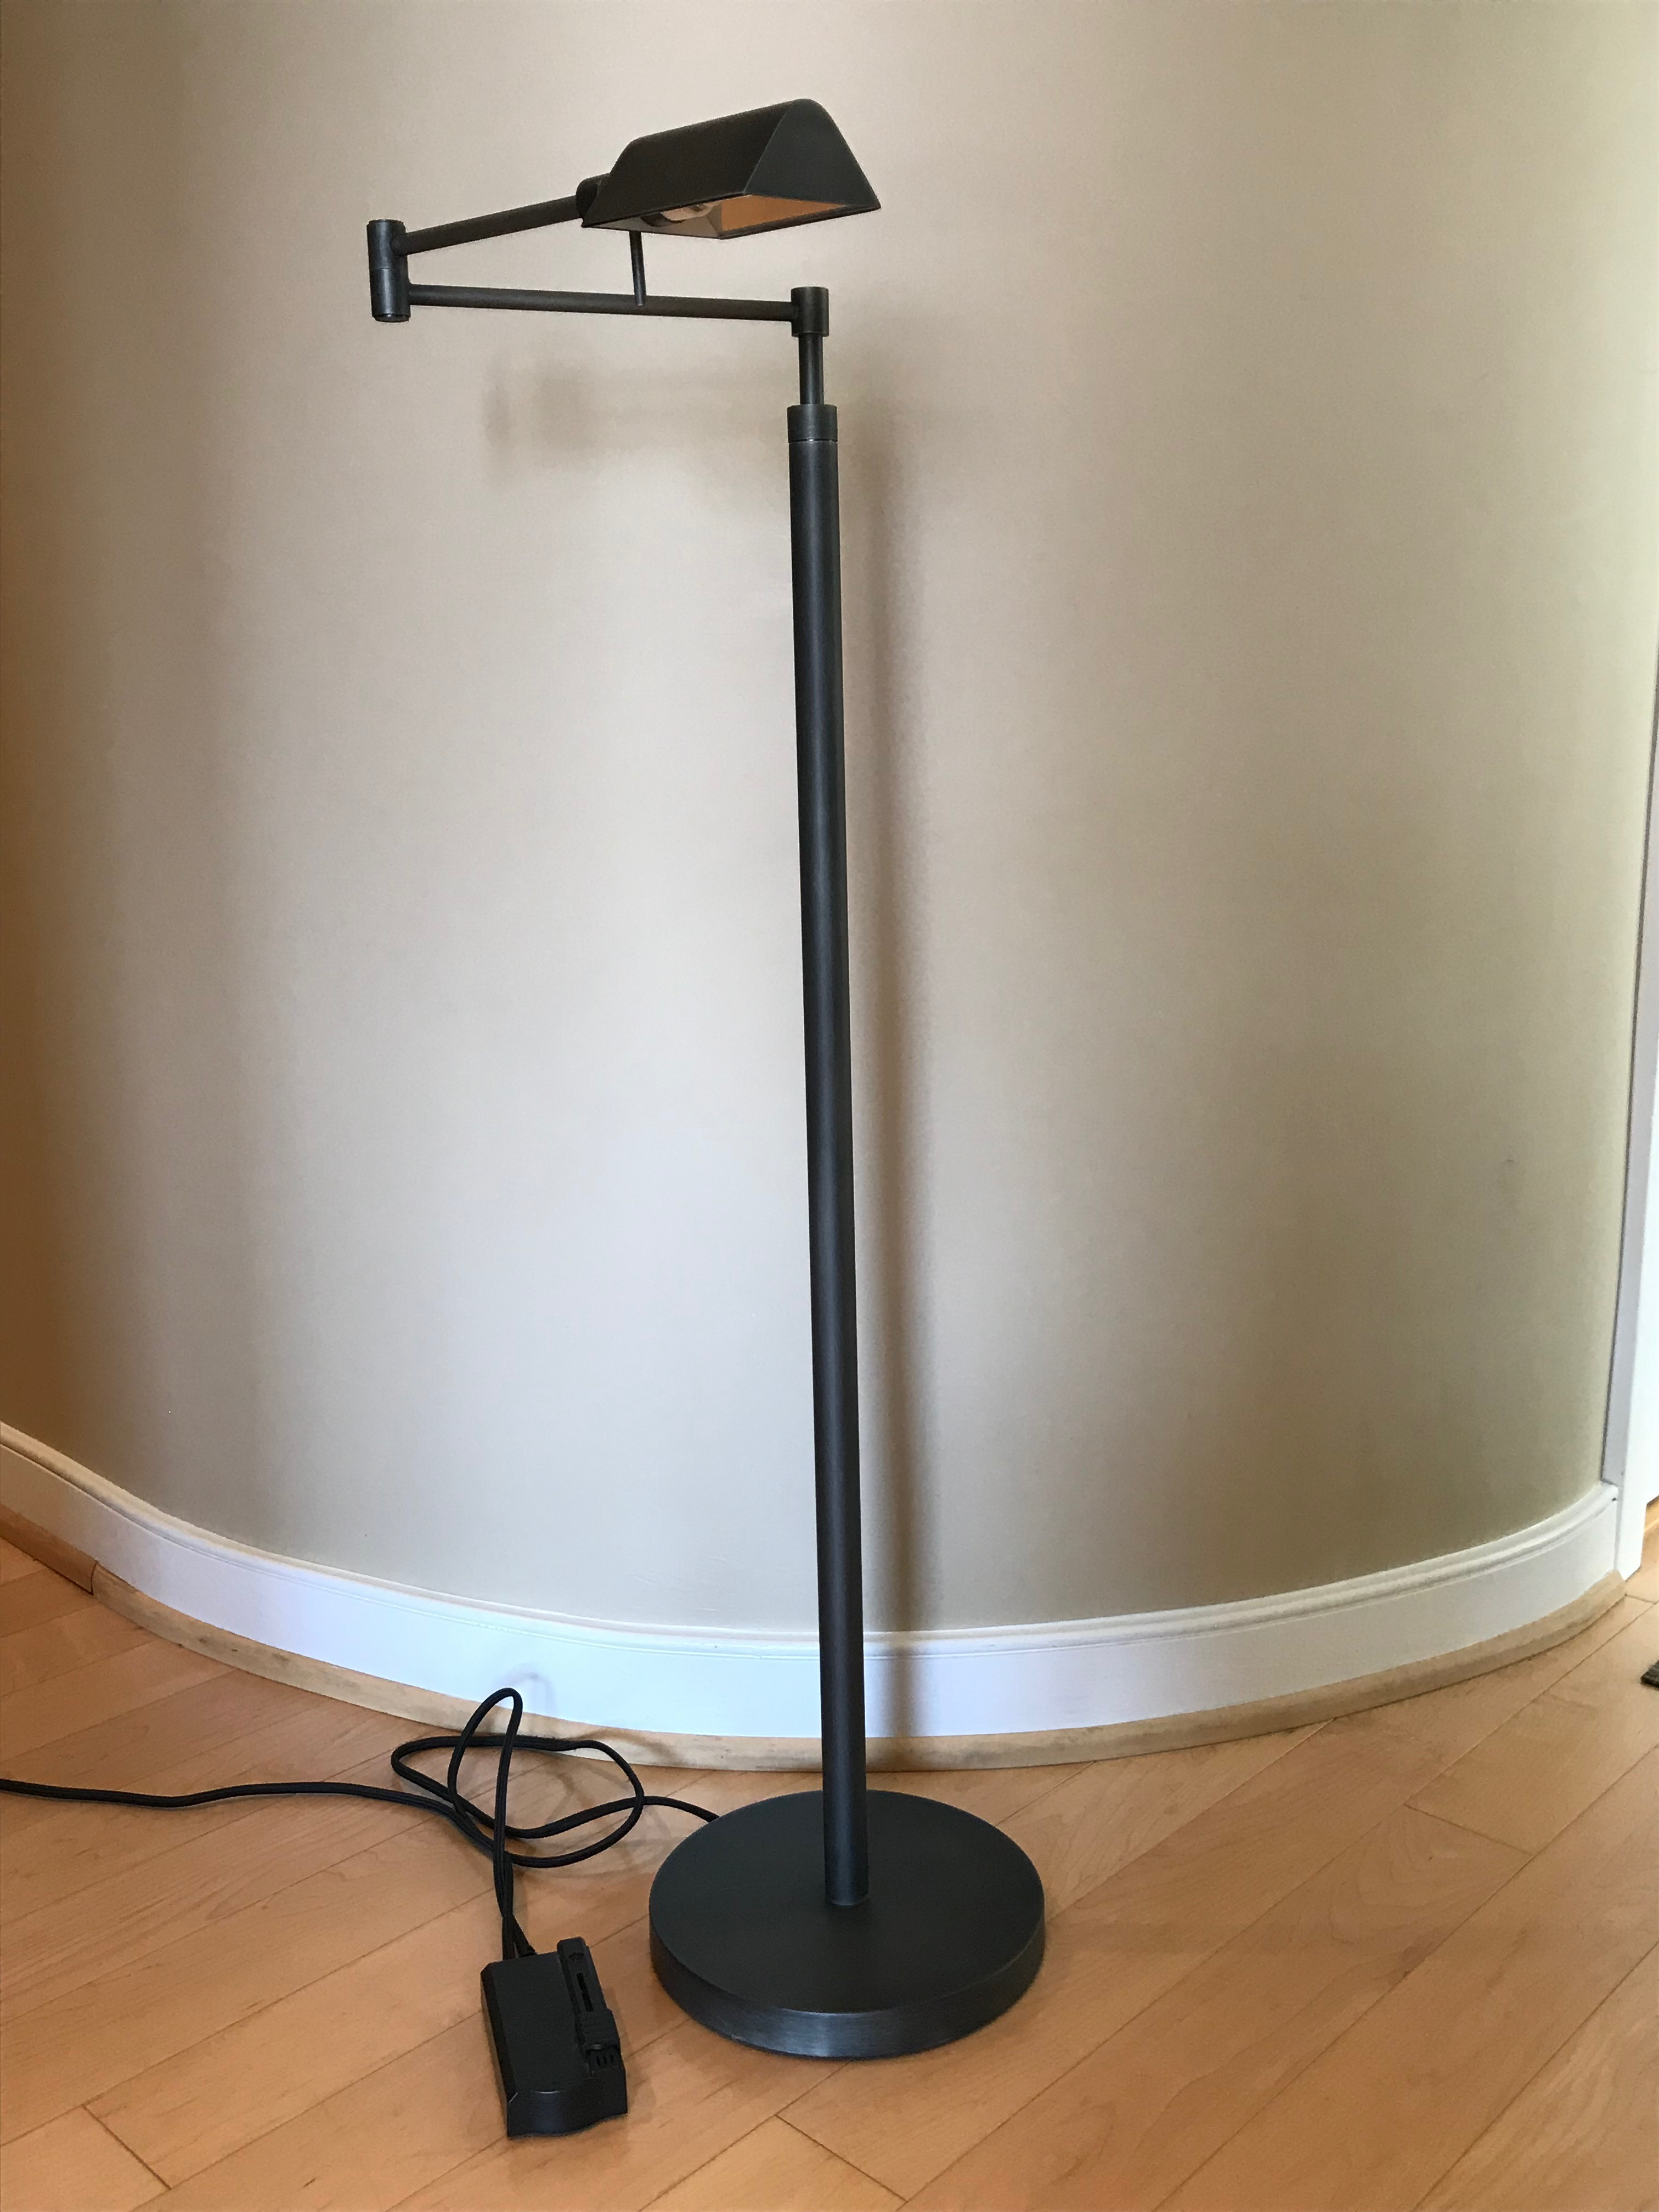 Metier Metal restoration hardware metier task floor lamp | chairish